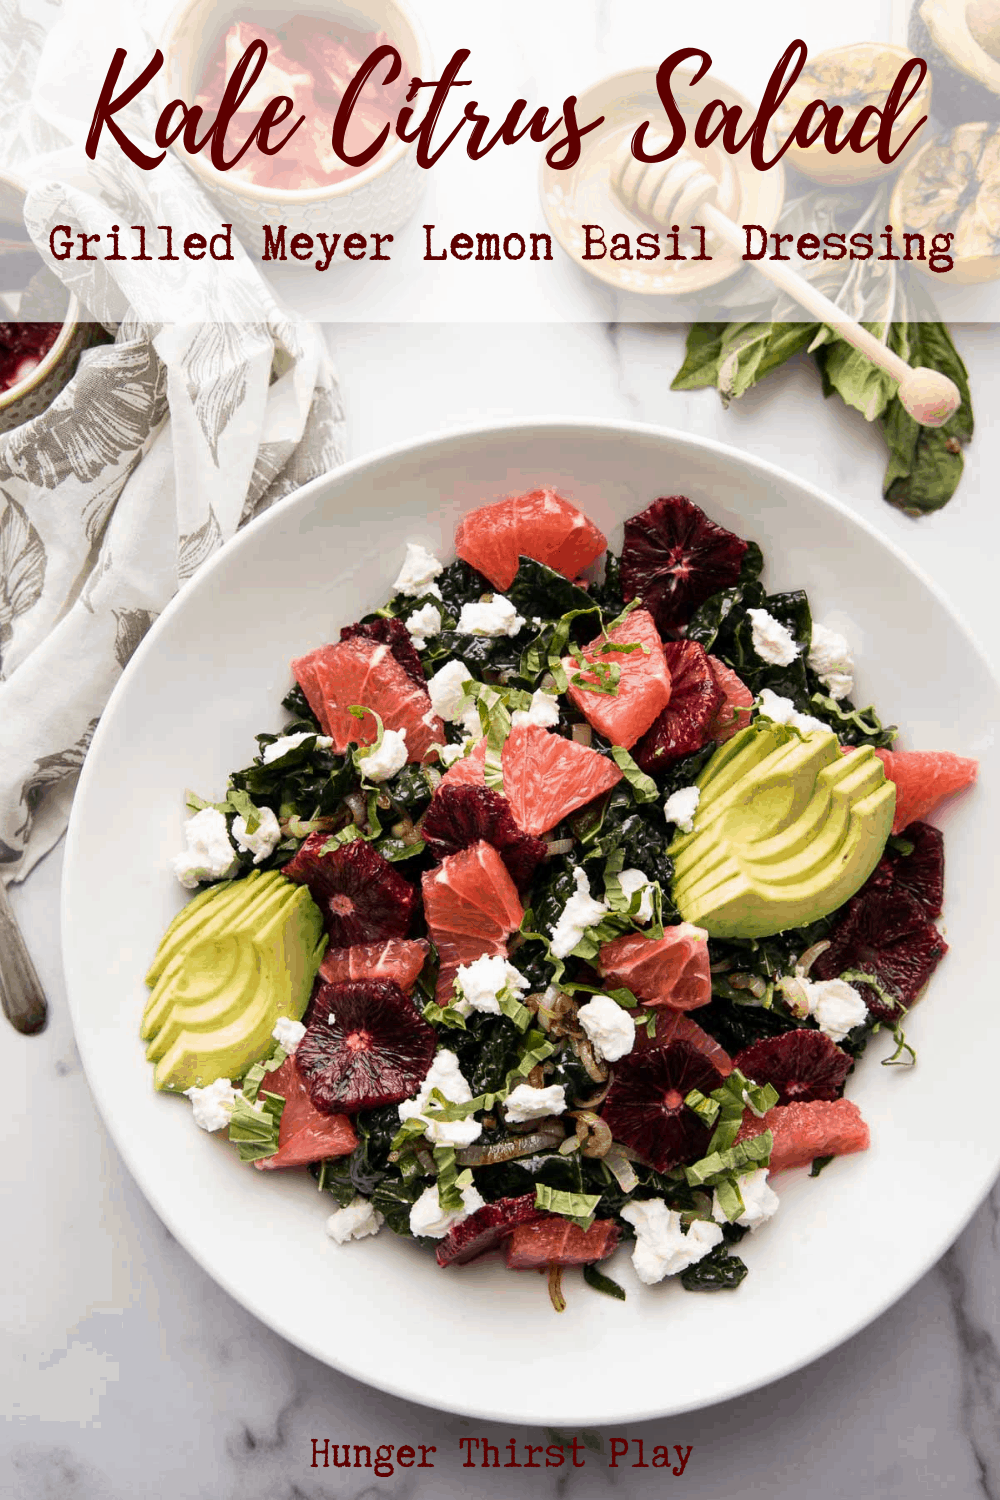 Kale citrus salad is the best easy salad recipe to get ready for fresh spring flavors! Lemon dressing massaged kale with grapefruit and blood orange, buttery savory shallots, creamy goat cheese and sweet honey drizzle. Make this Kale Citrus Salad as a side dish or top with protein and enjoy as a main dish.